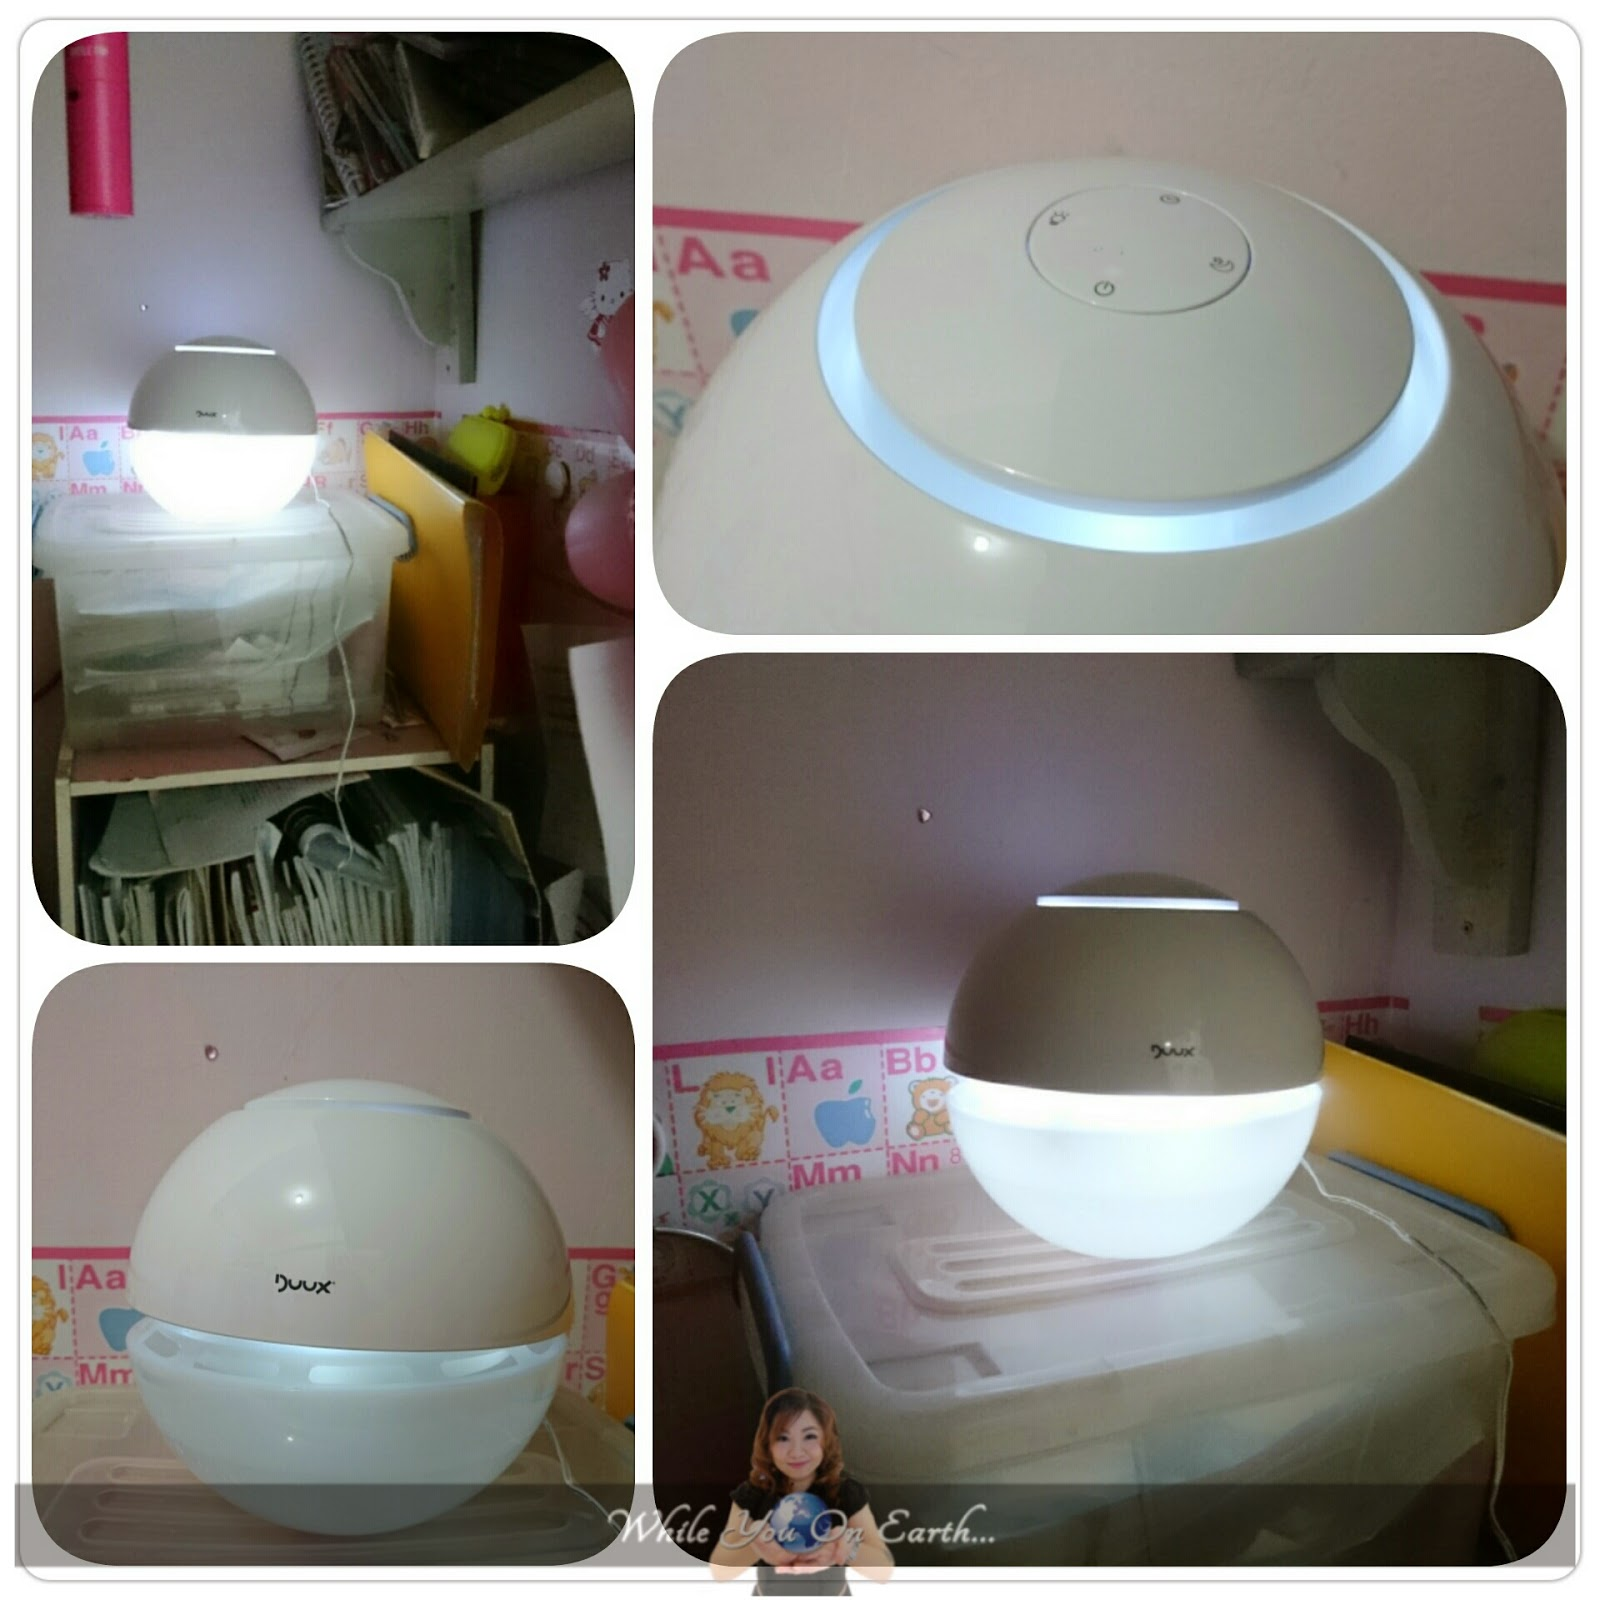 Duux Ultrasonic Air Humidifier where I put it on my girl's room #824A5C